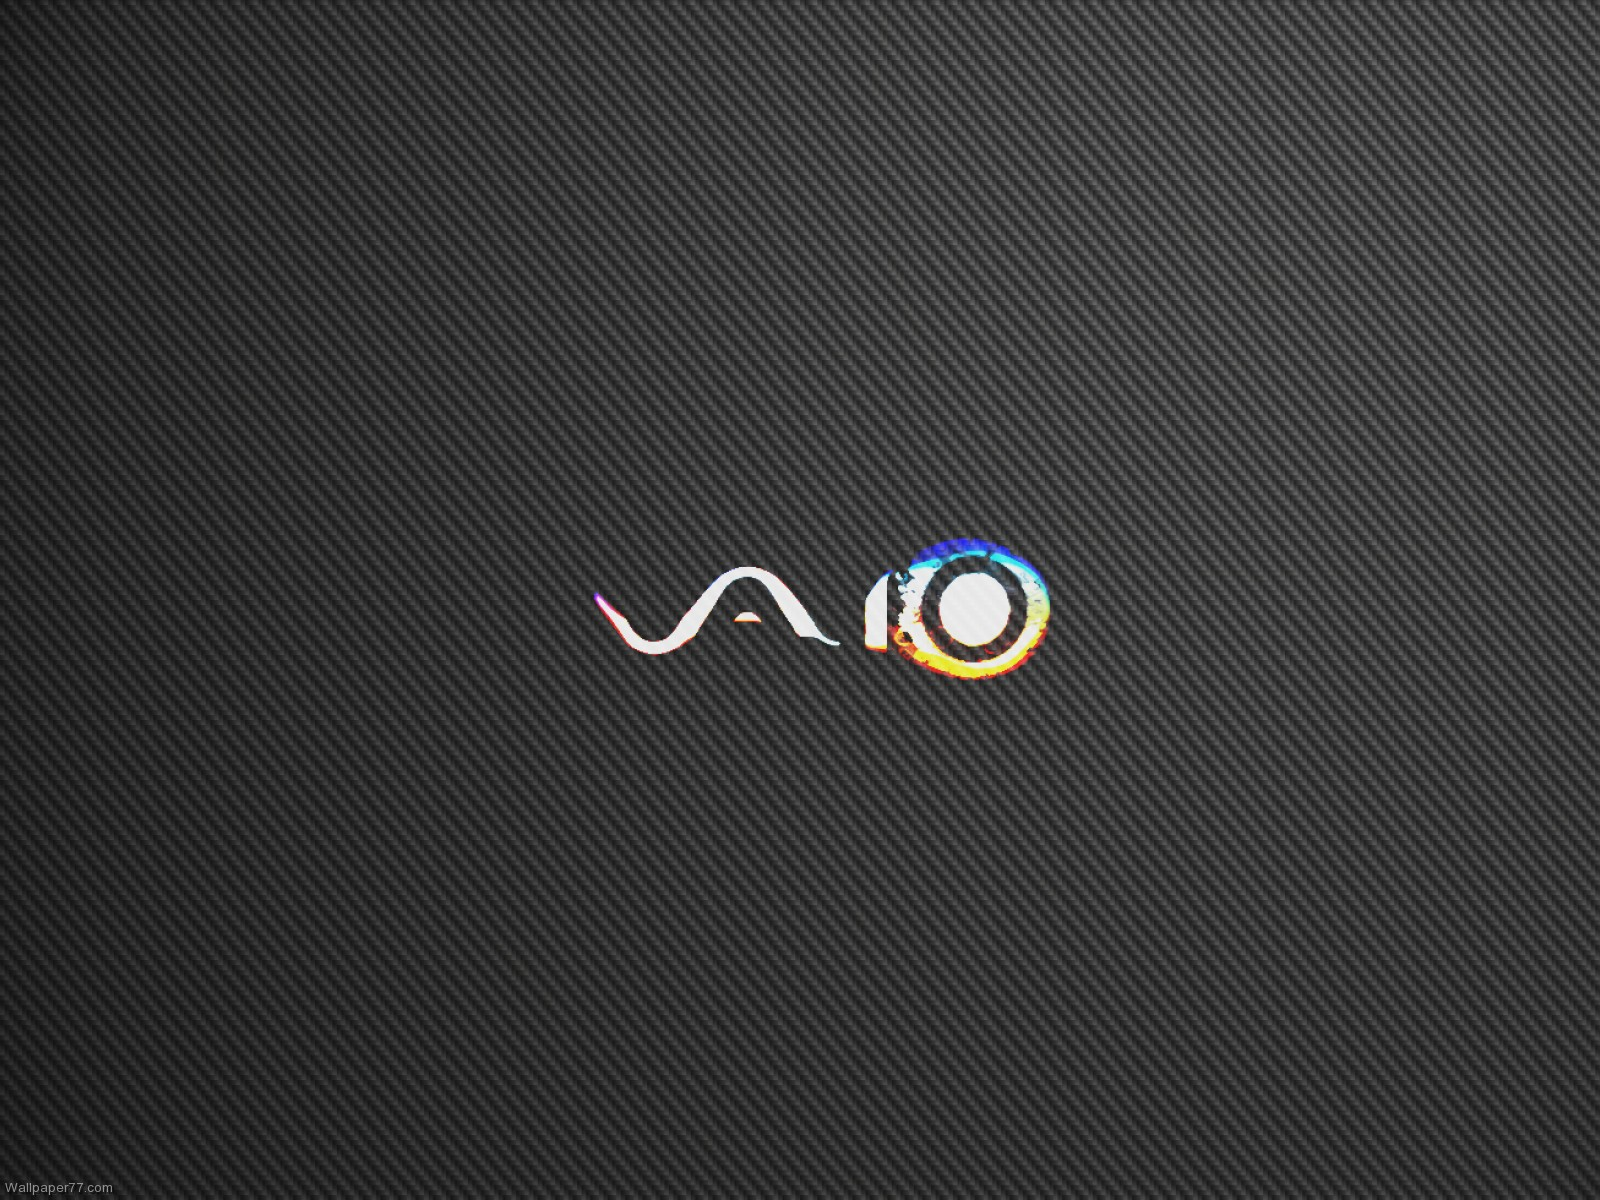 Vaio Wall Paper Black: Dark Sony VAIO Background